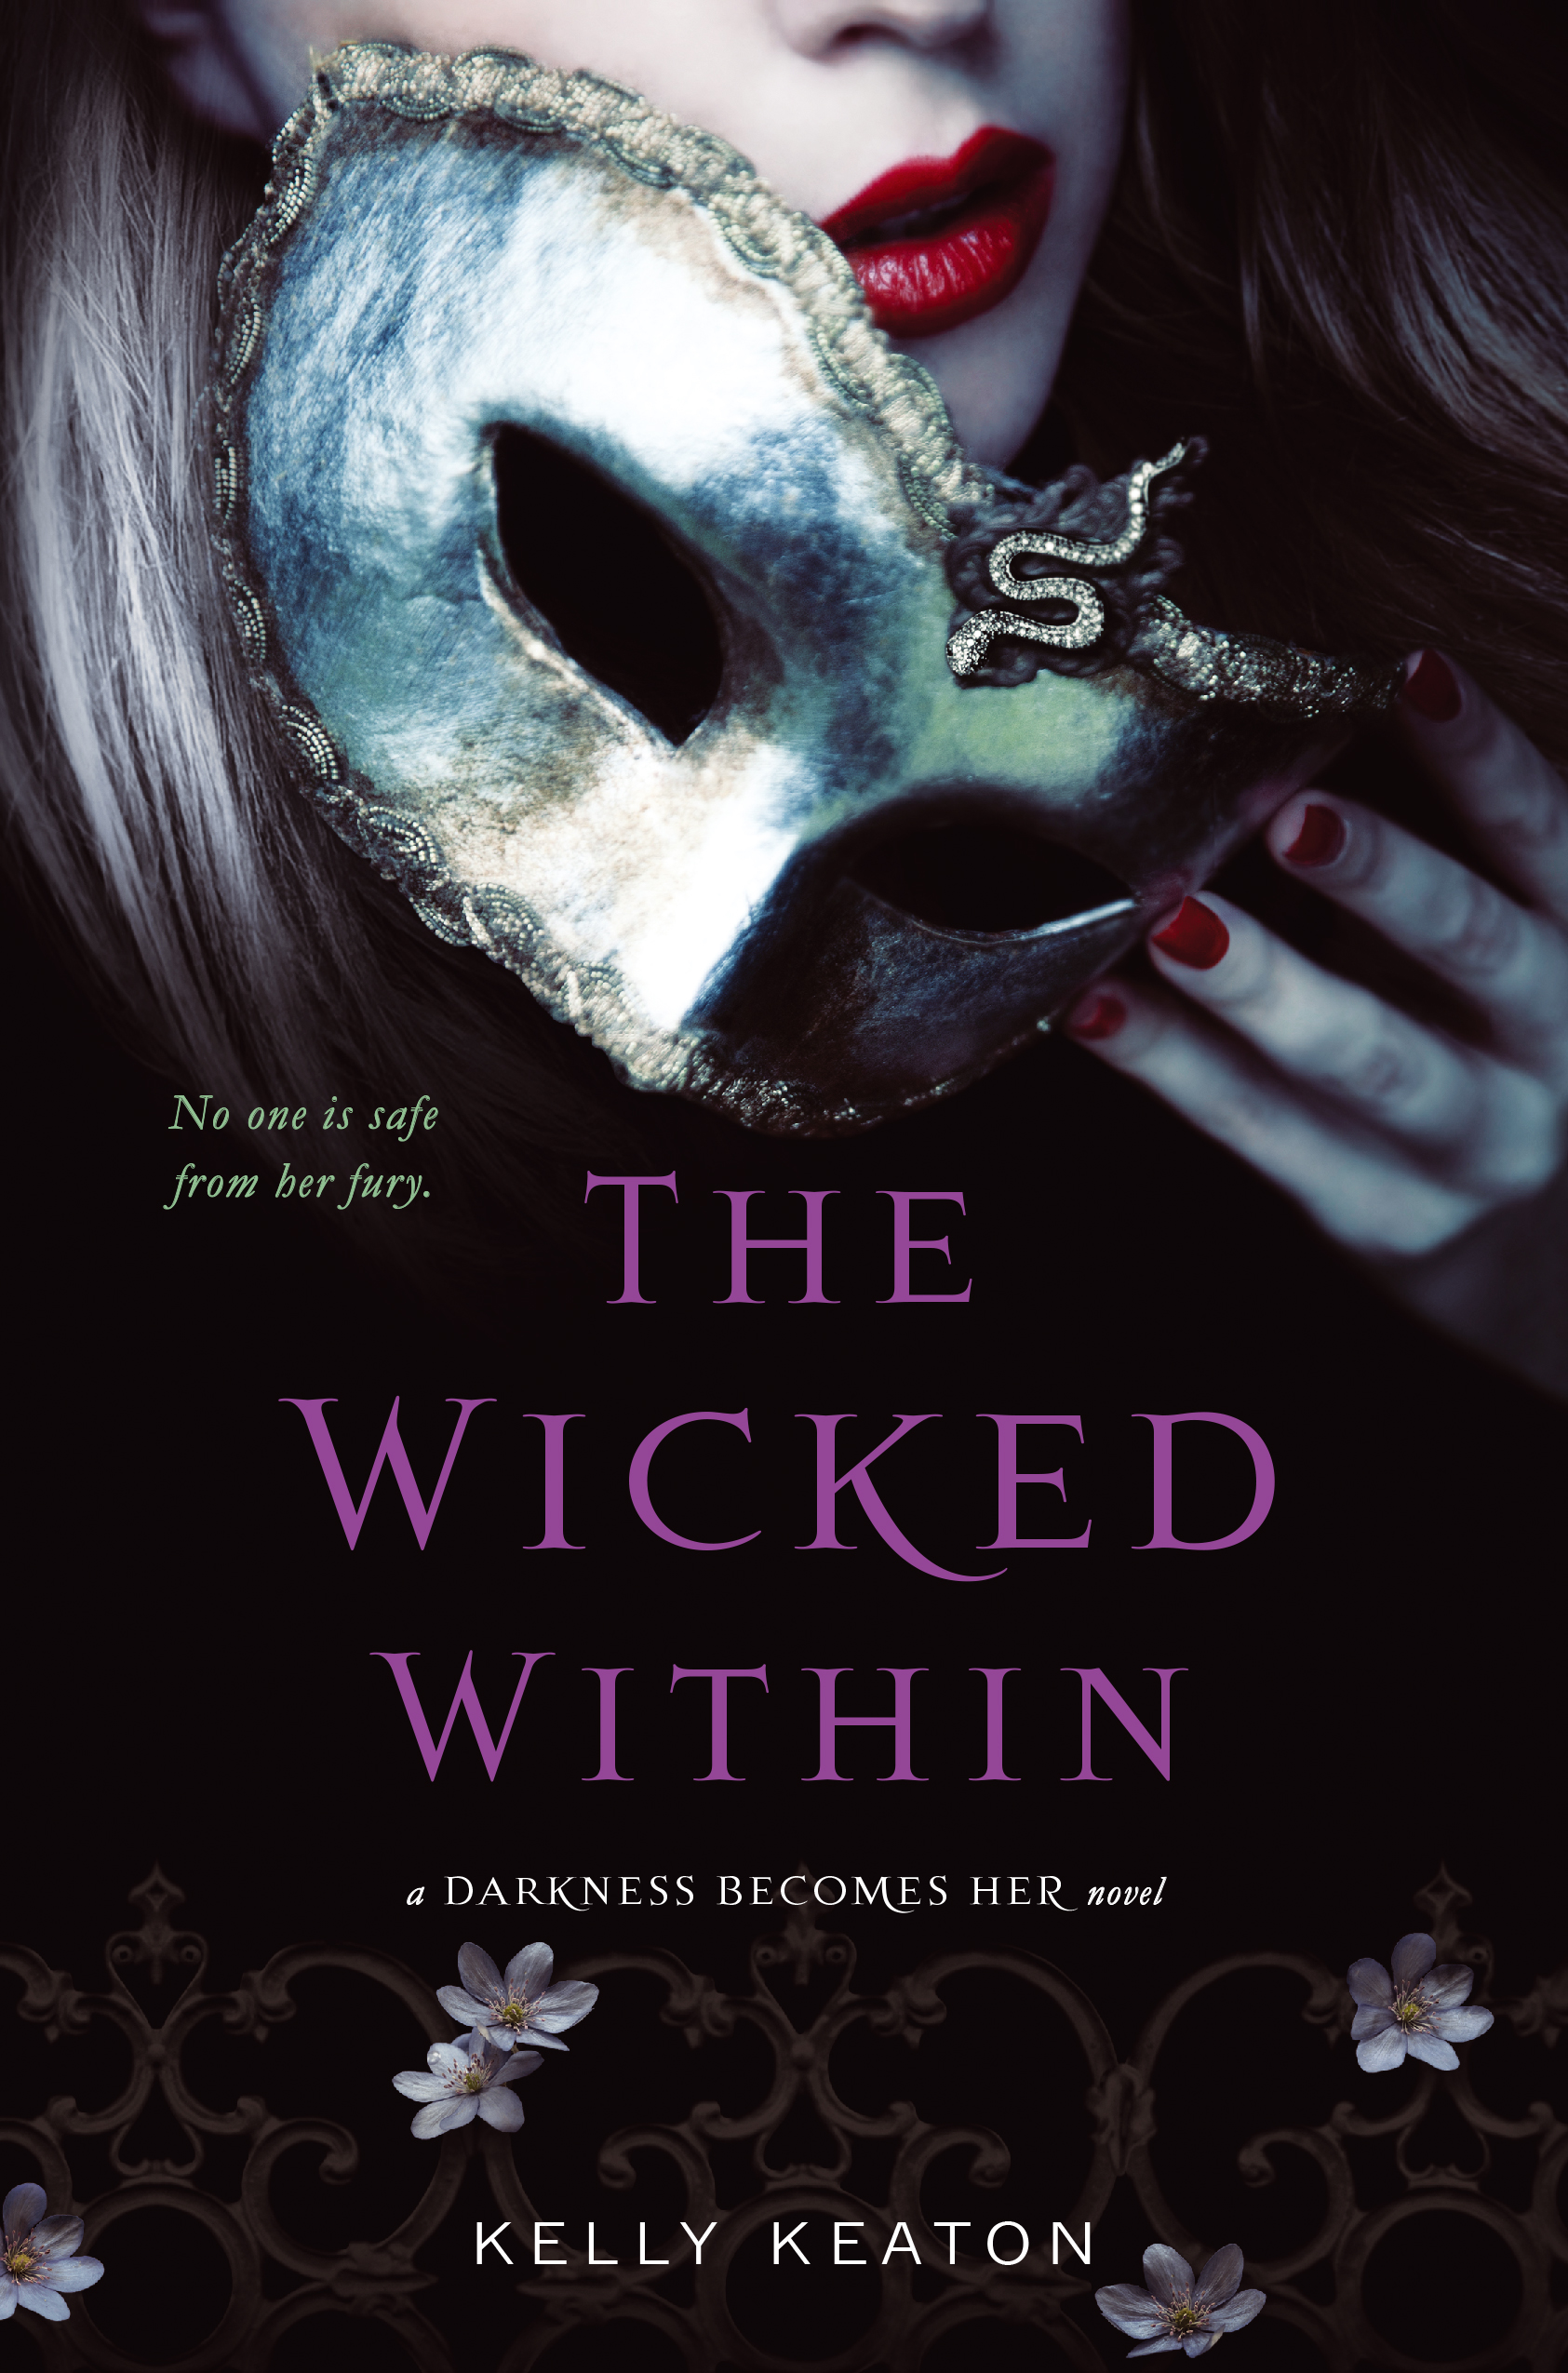 The Wicked Within   Book by Kelly Keaton   Official